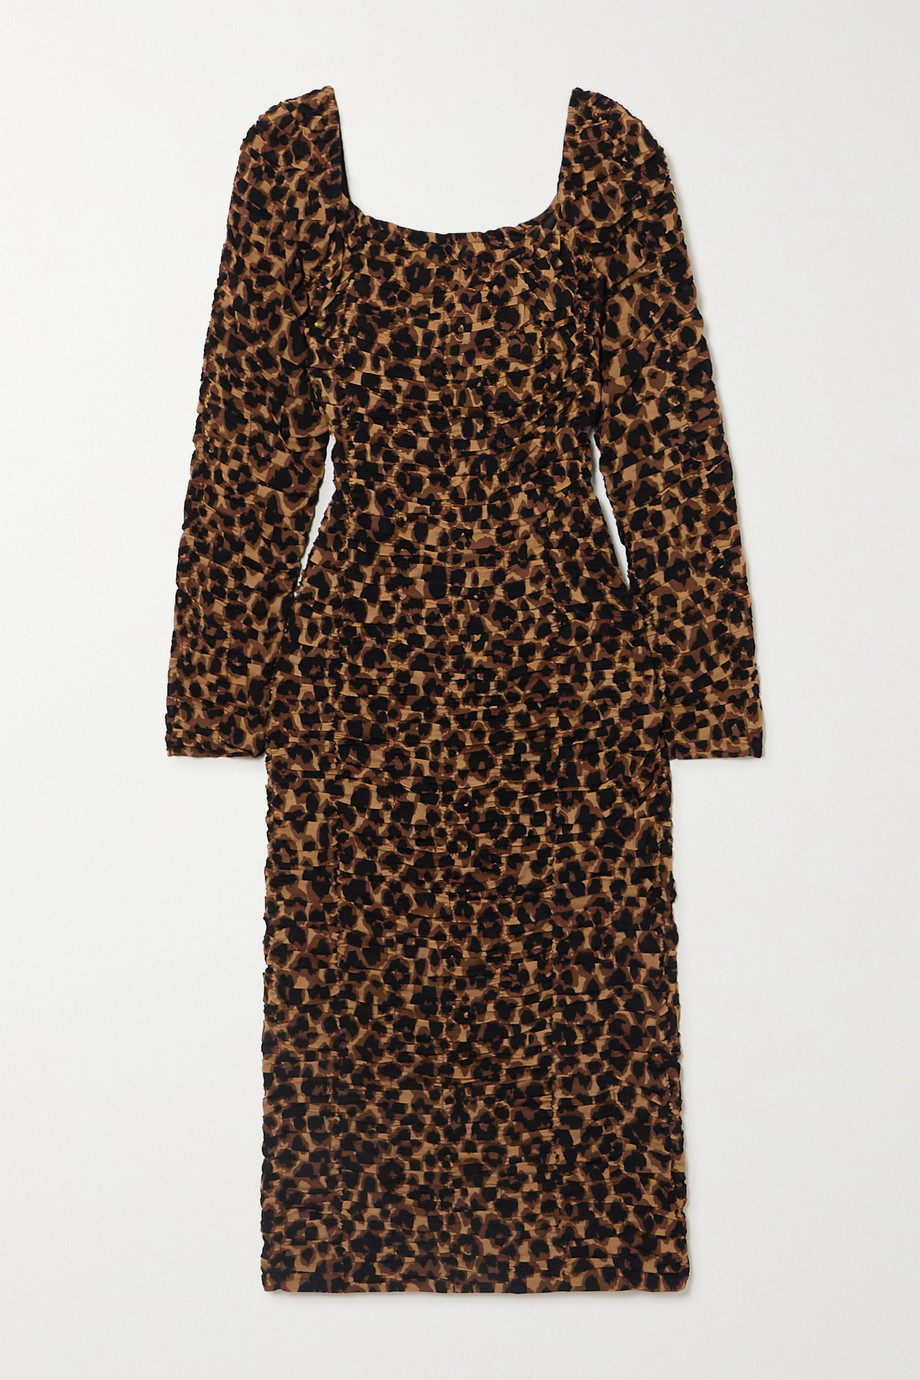 BY MALENE BIRGER Amyna ruched leopard-print stretch-jersey midi dress